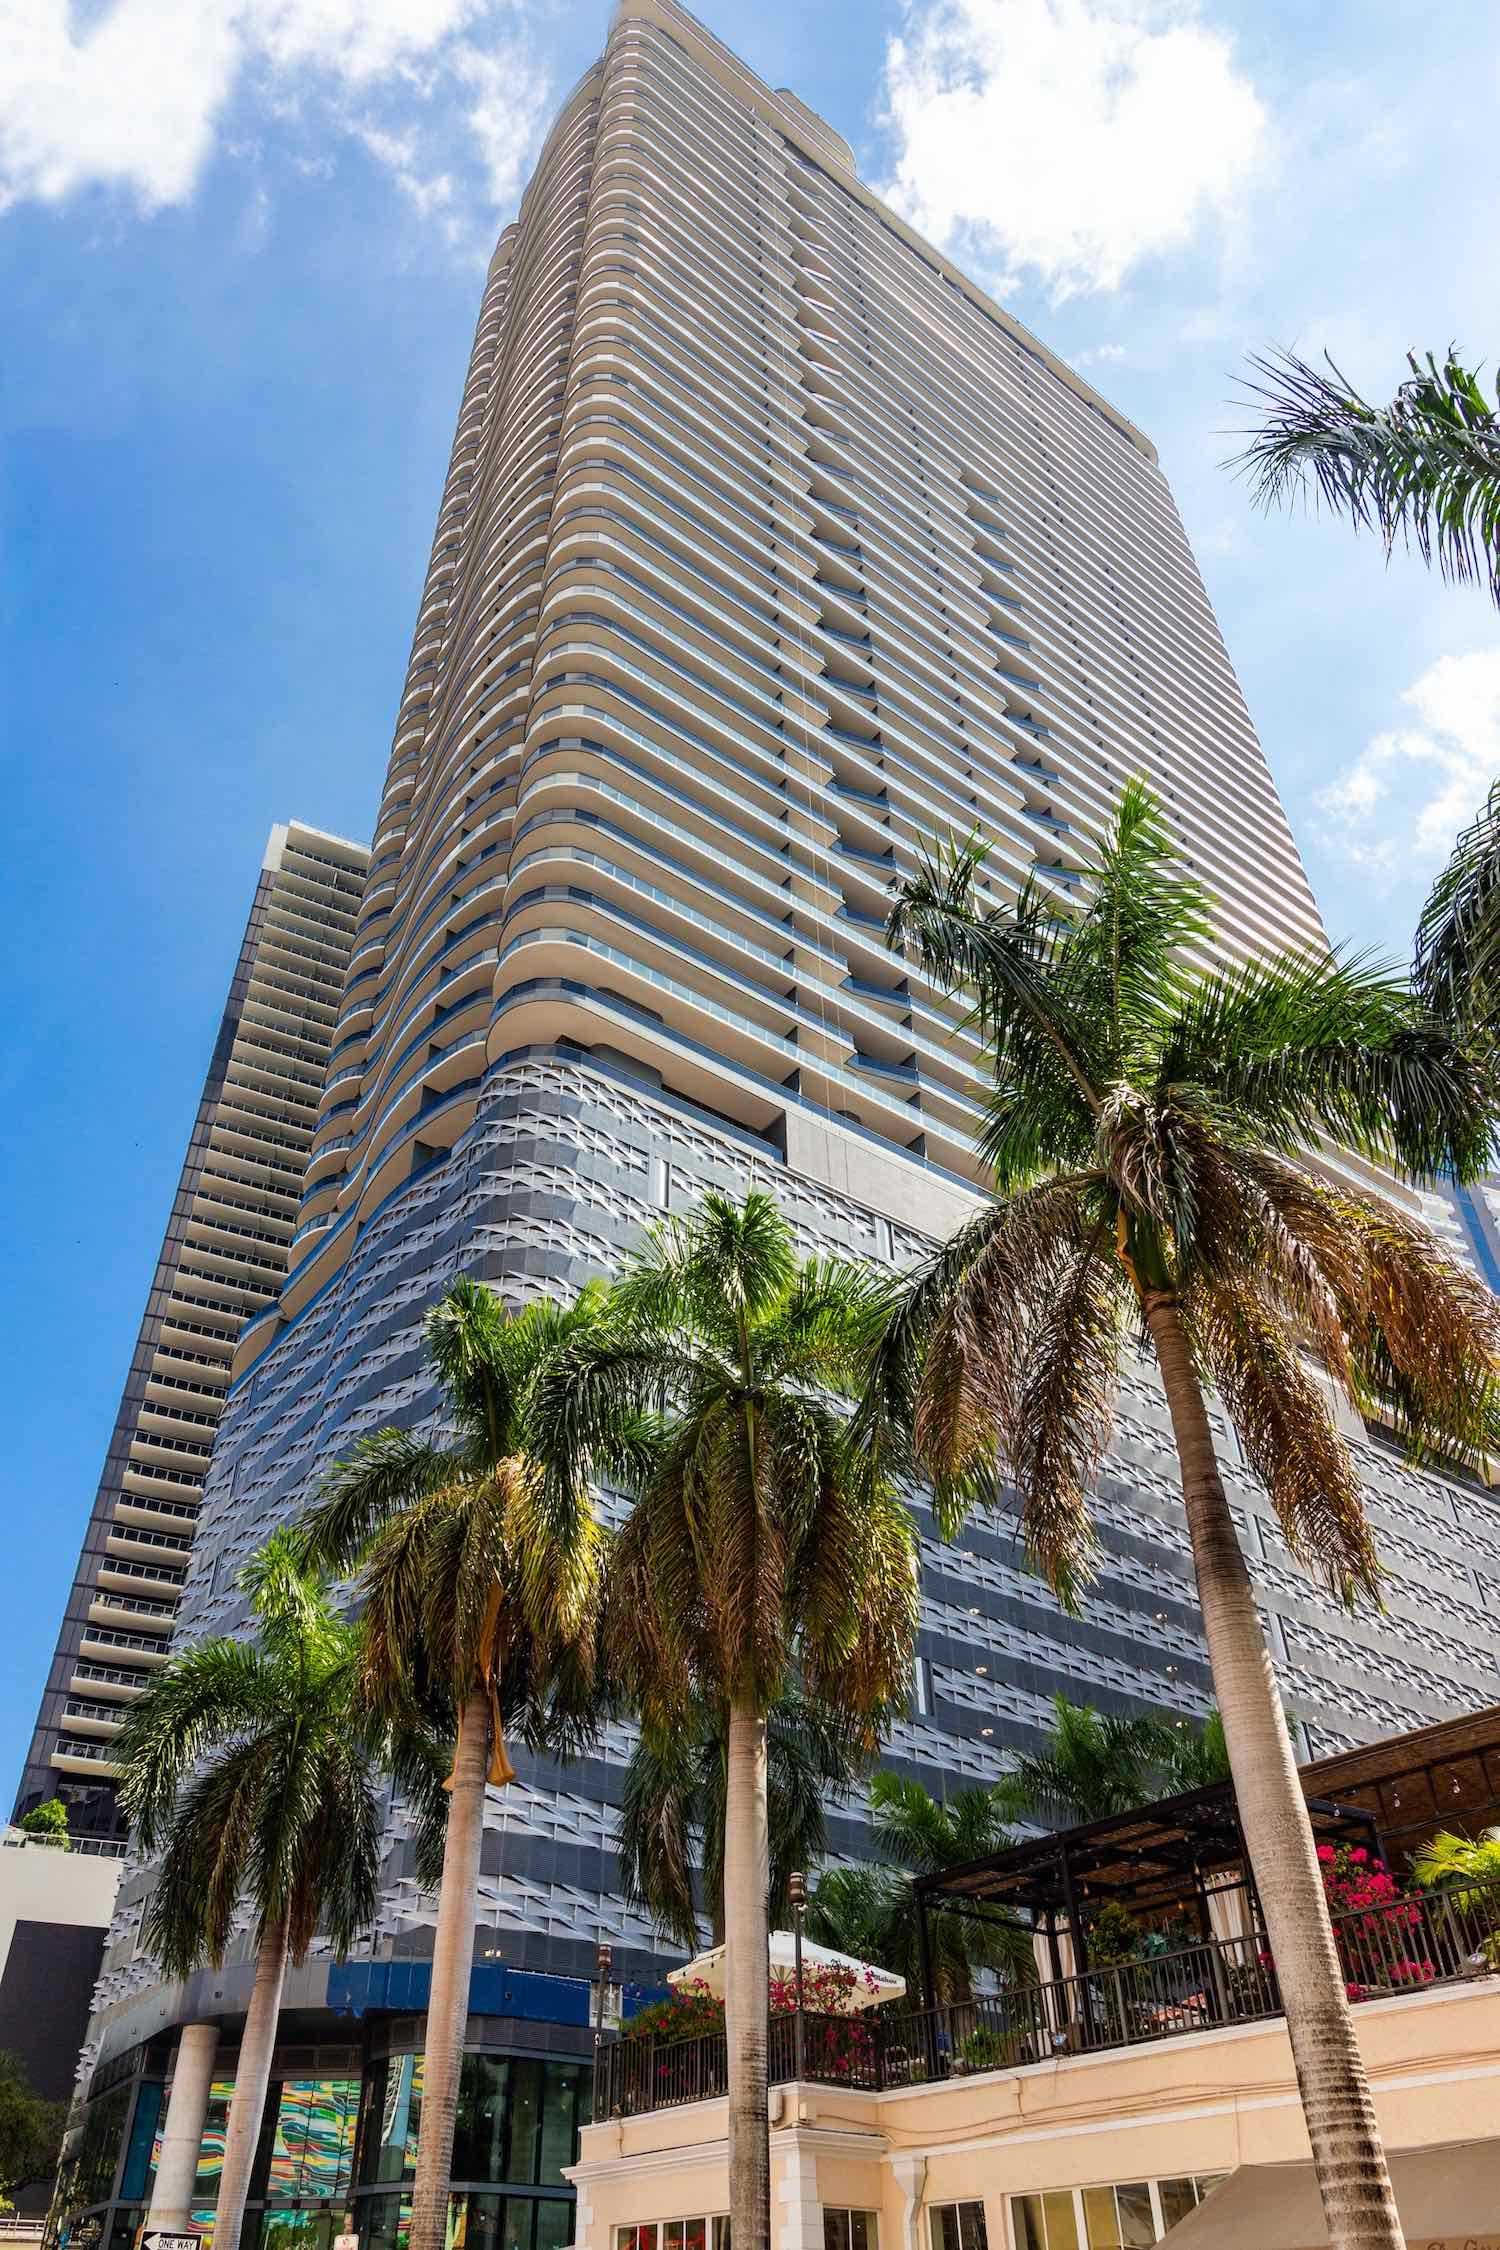 Brickell Flatiron Completed to Become Miami's Fourth Tallest Tower